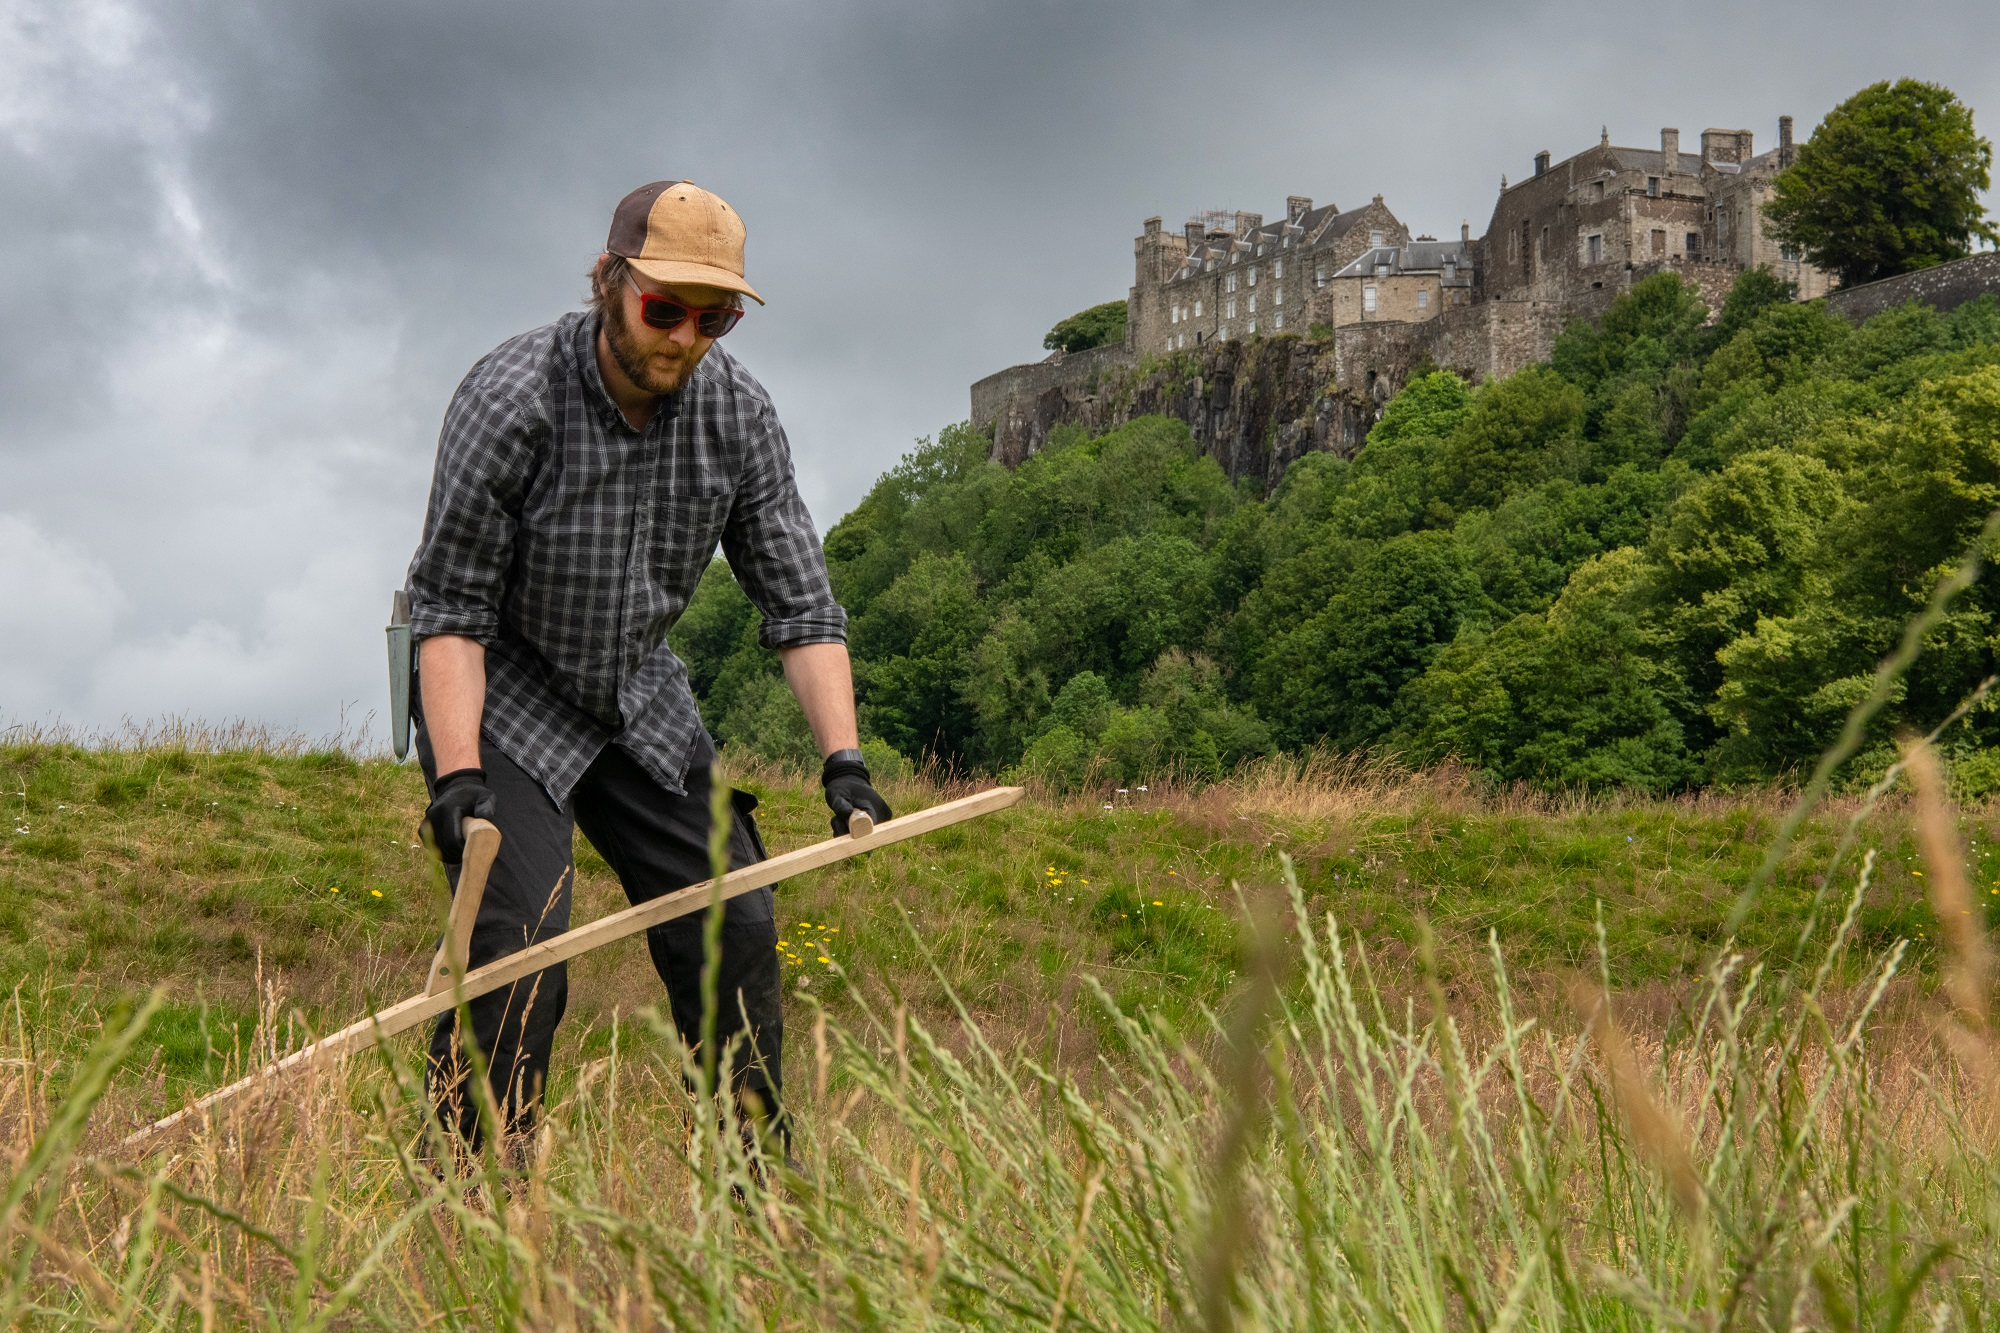 A man cutting grass with a scythe with a castle in the background